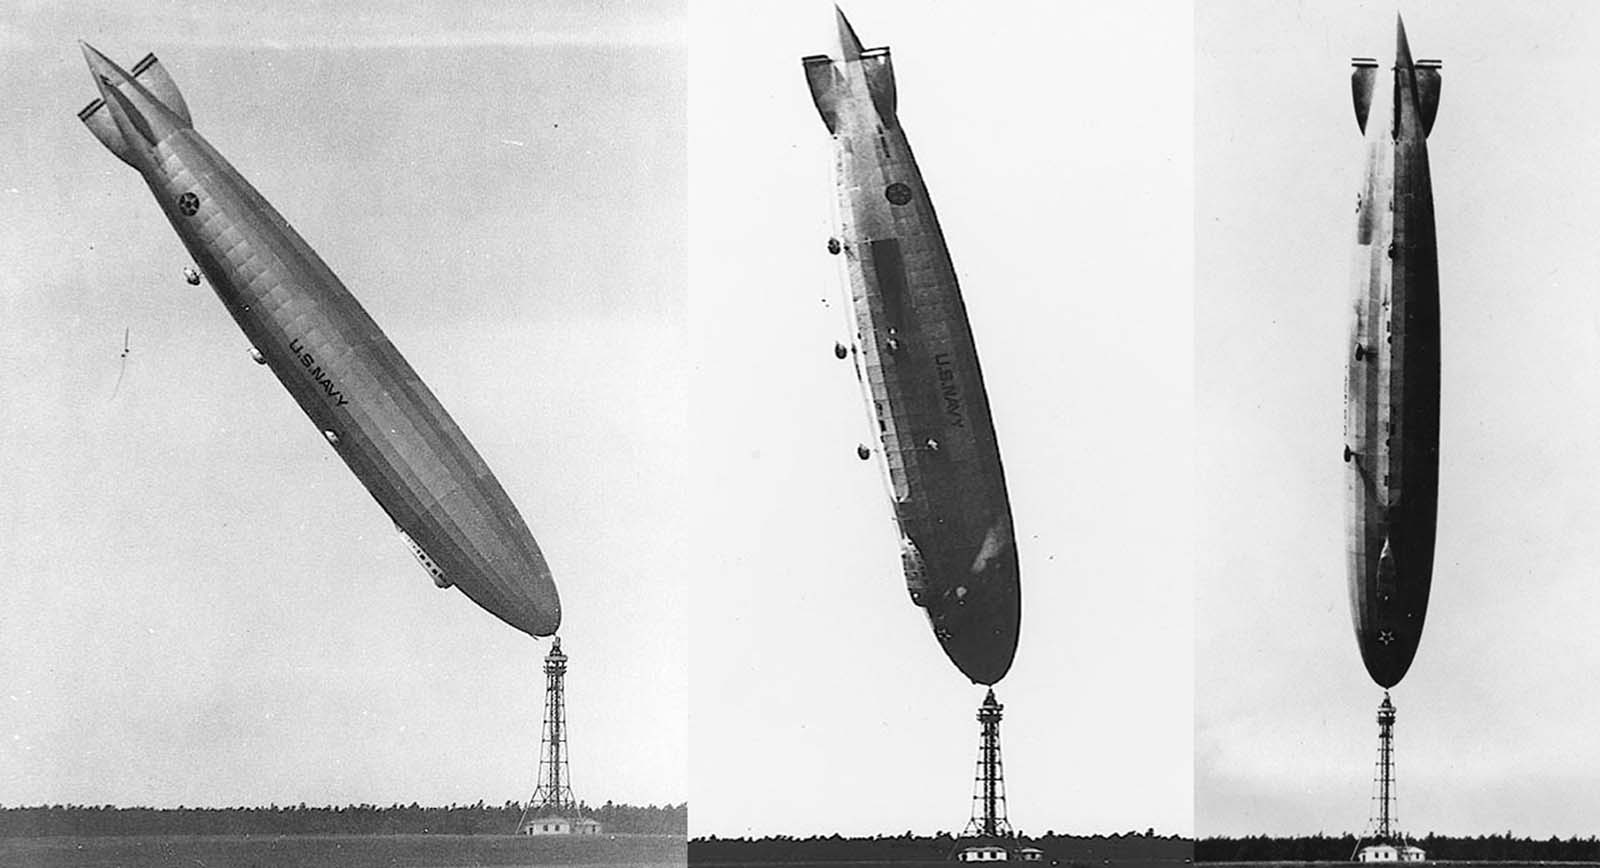 The U.S. Navy's dirigible Los Angeles, upended after a turbulent wind from the Atlantic flipped the 700-foot airship on its nose at Lakehurst, New Jersey, in 1926. The ship slowly righted itself and there were no serious injuries to the crew of 25.